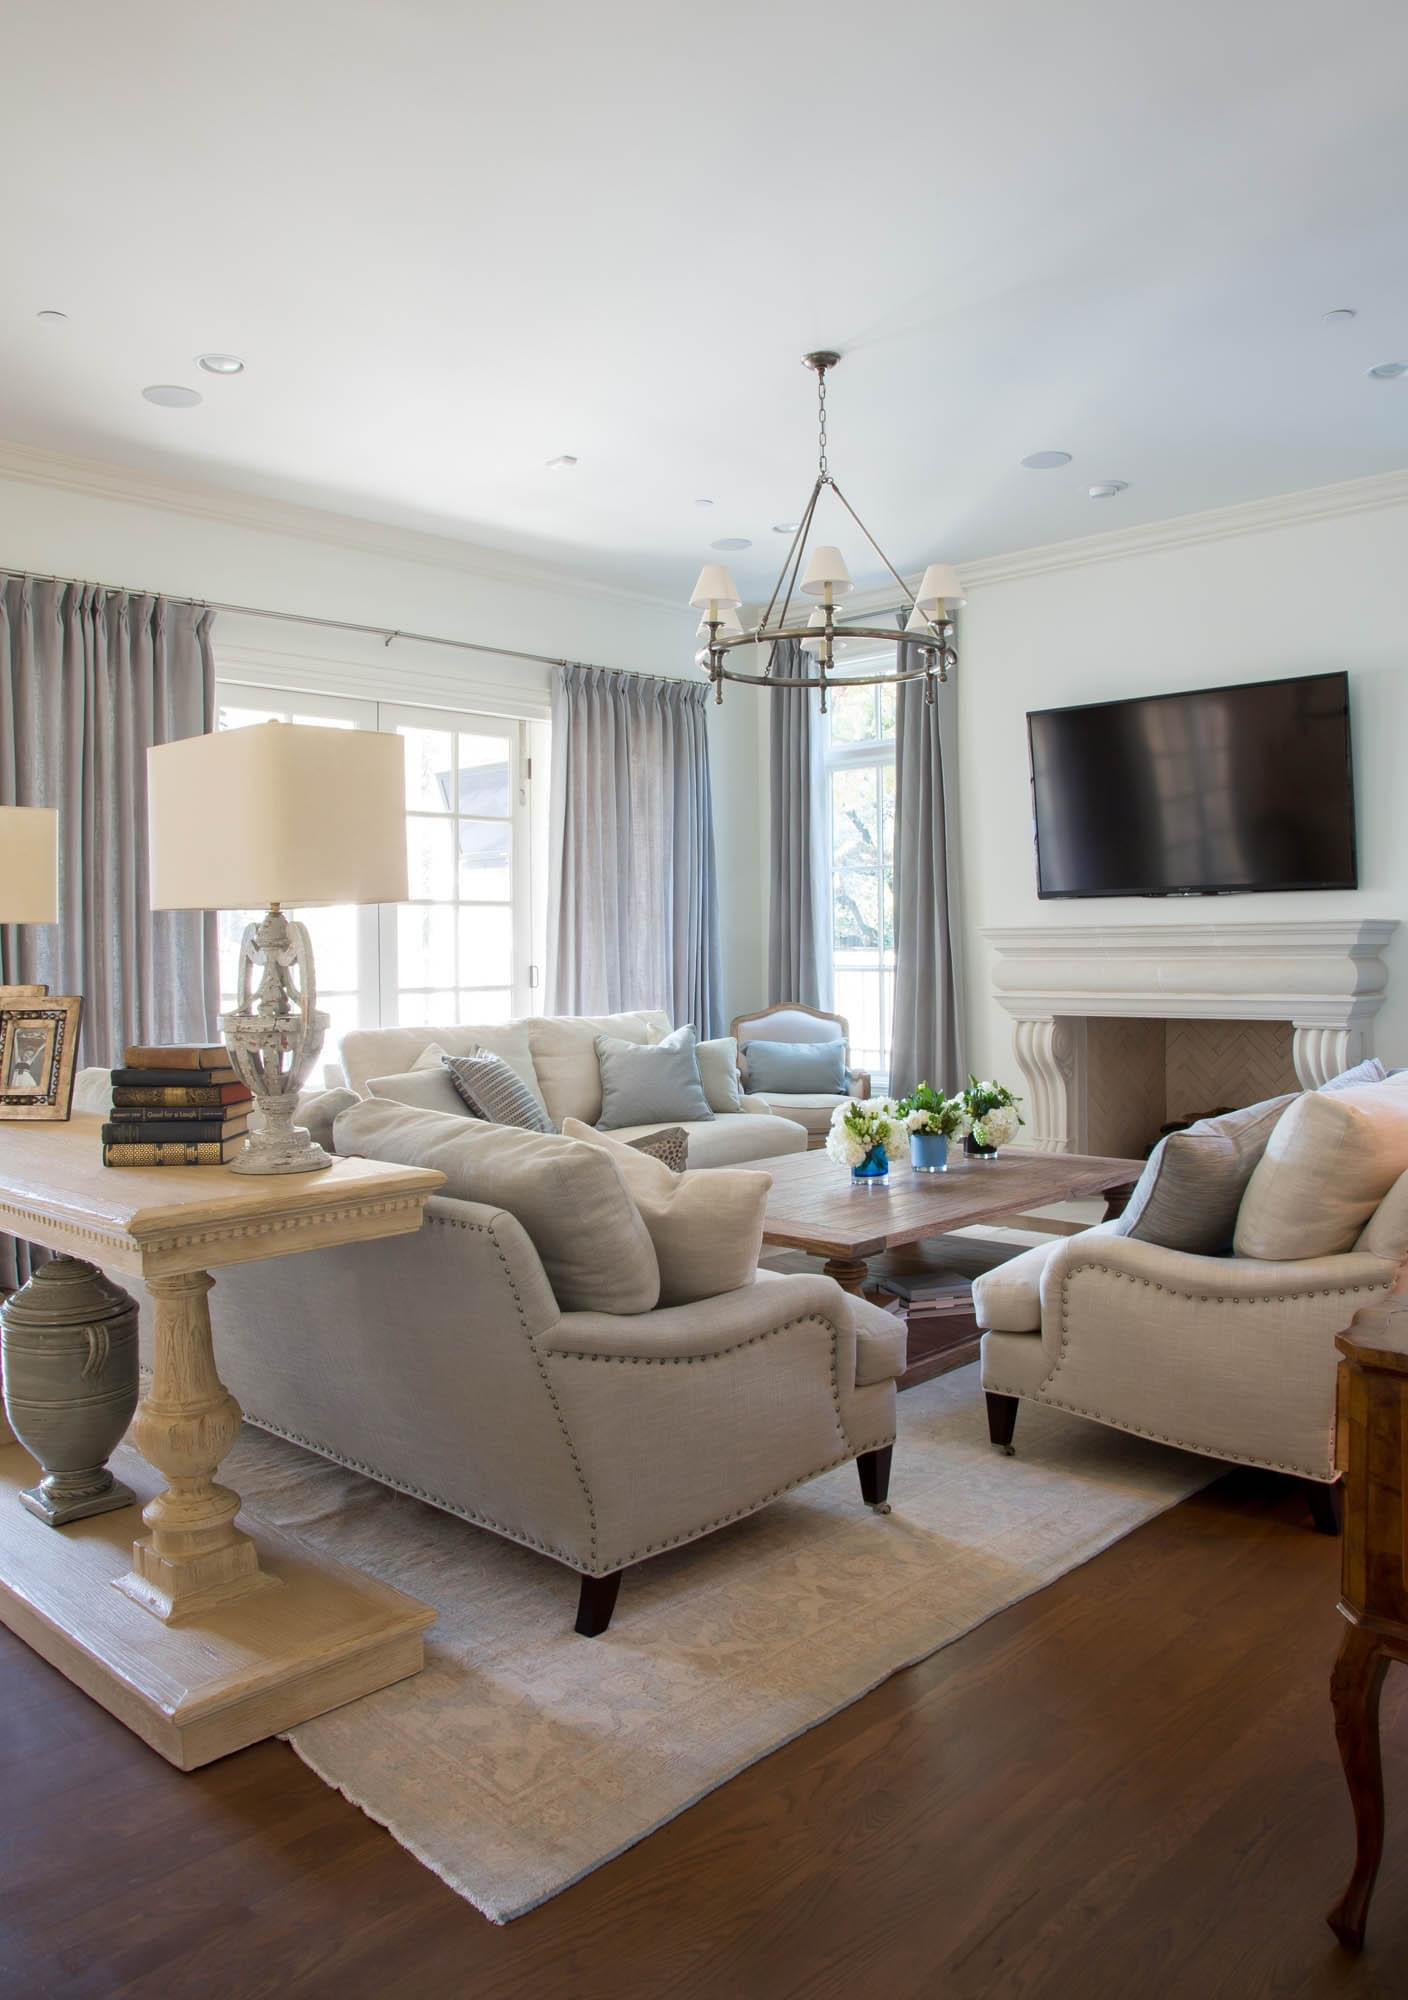 Best ideas about Family Room Design . Save or Pin 3629 Dartmouth Coats Homes Now.